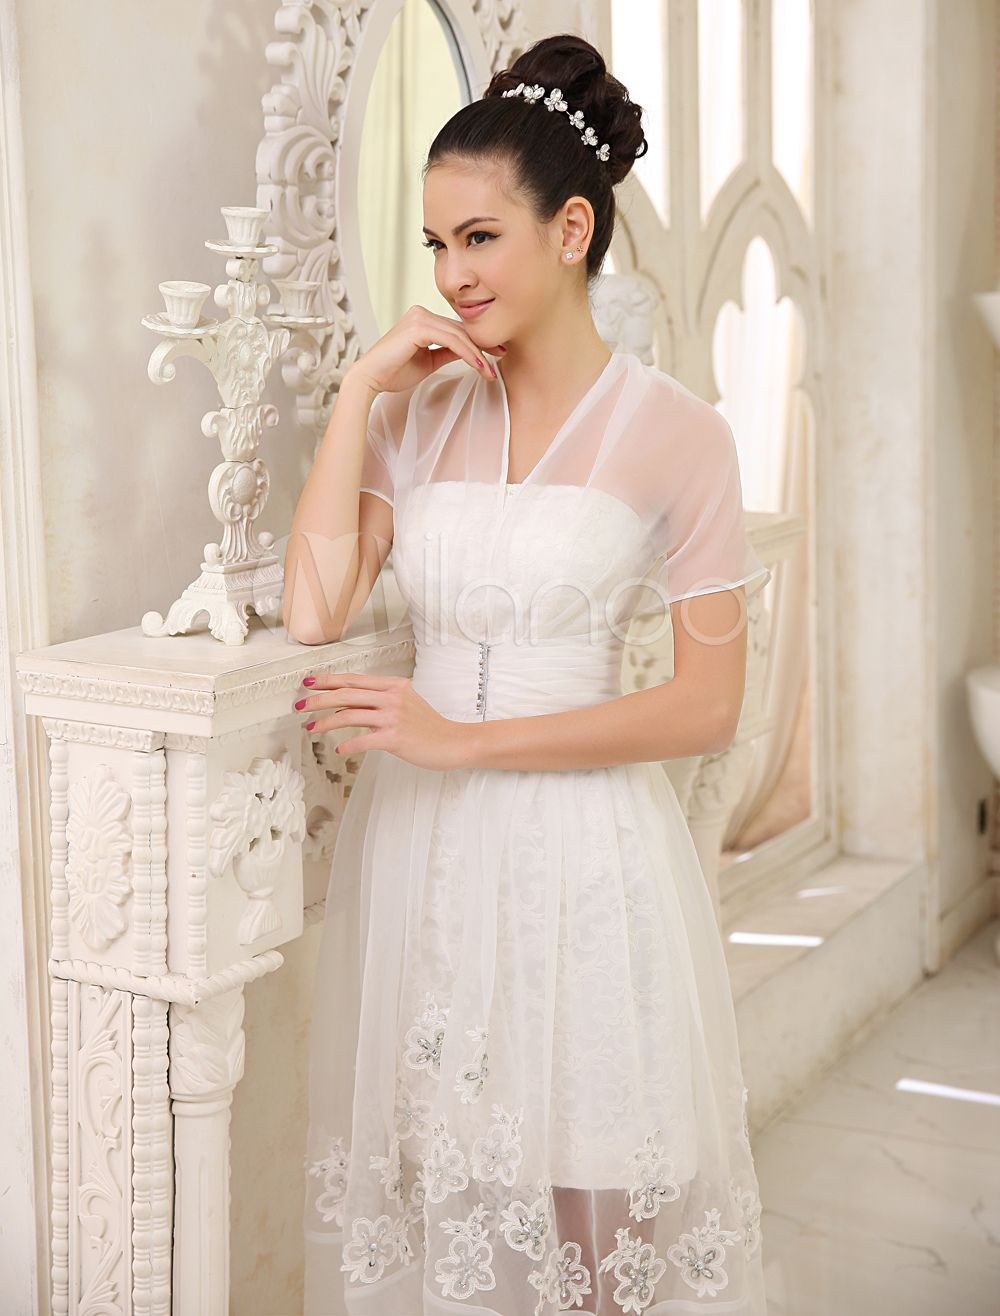 Short wedding reception dress  Short Ivory Bridal Wedding Dress with Strapless Neck and Sheath